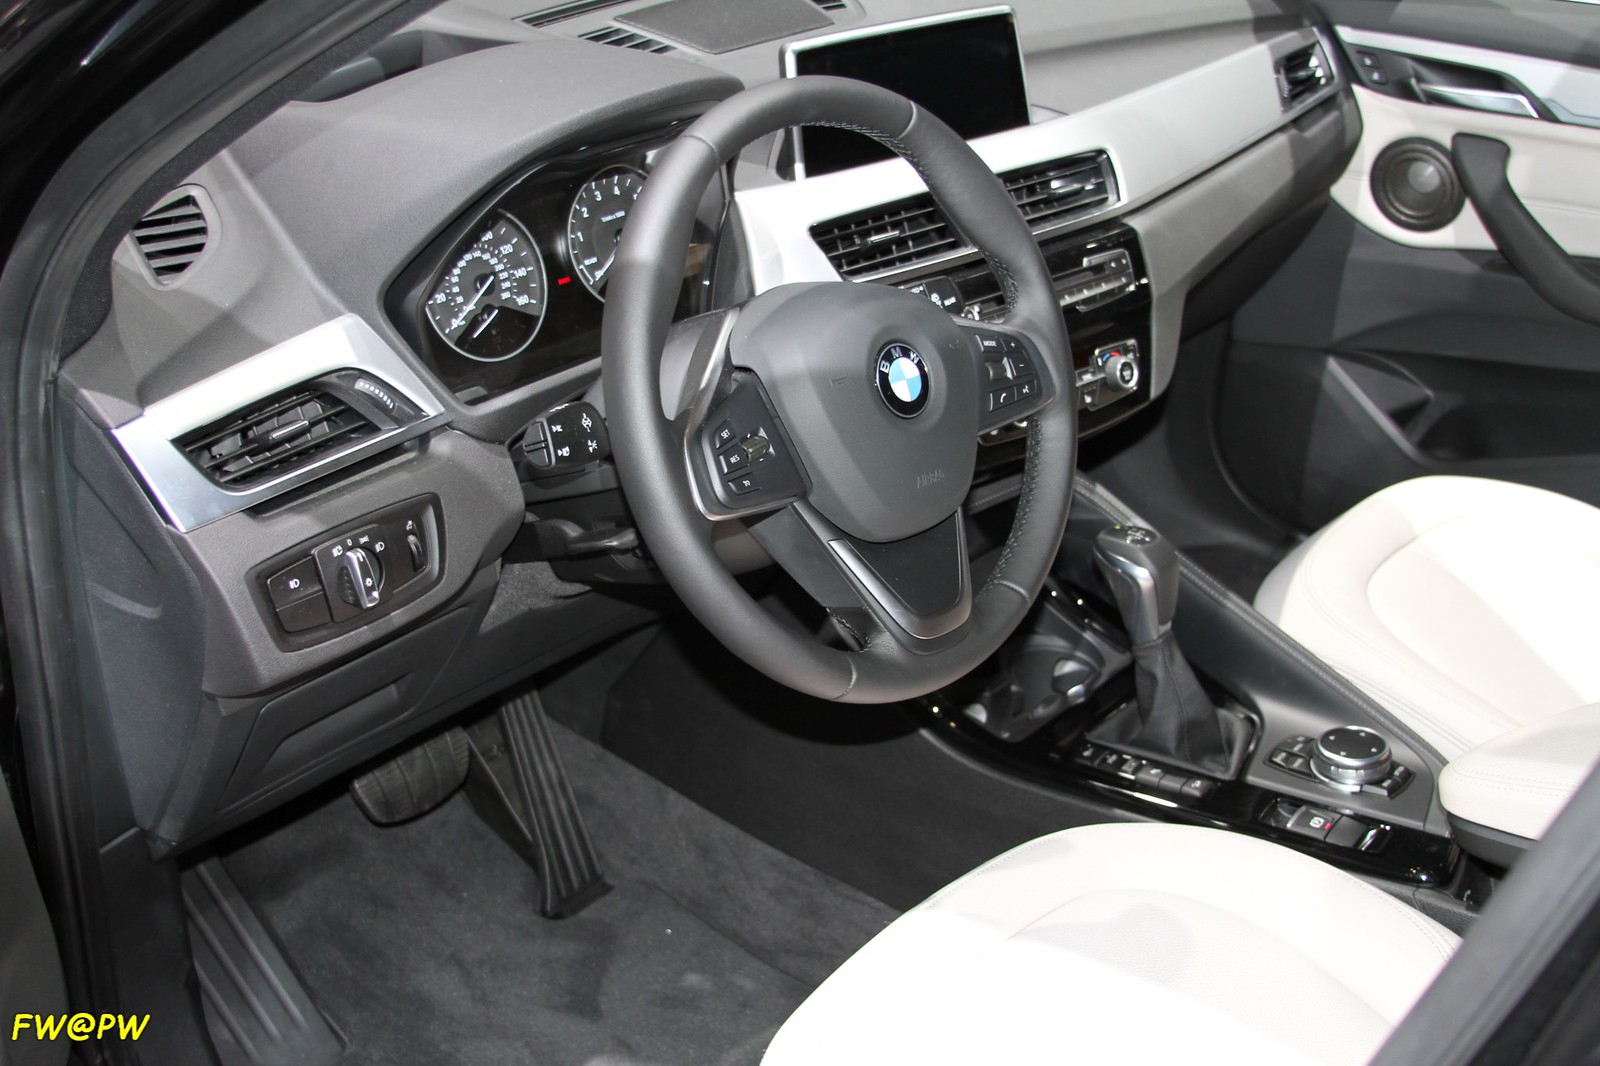 BMW X1 Launched in Pakistan. - 26922237282 c9690898ac h